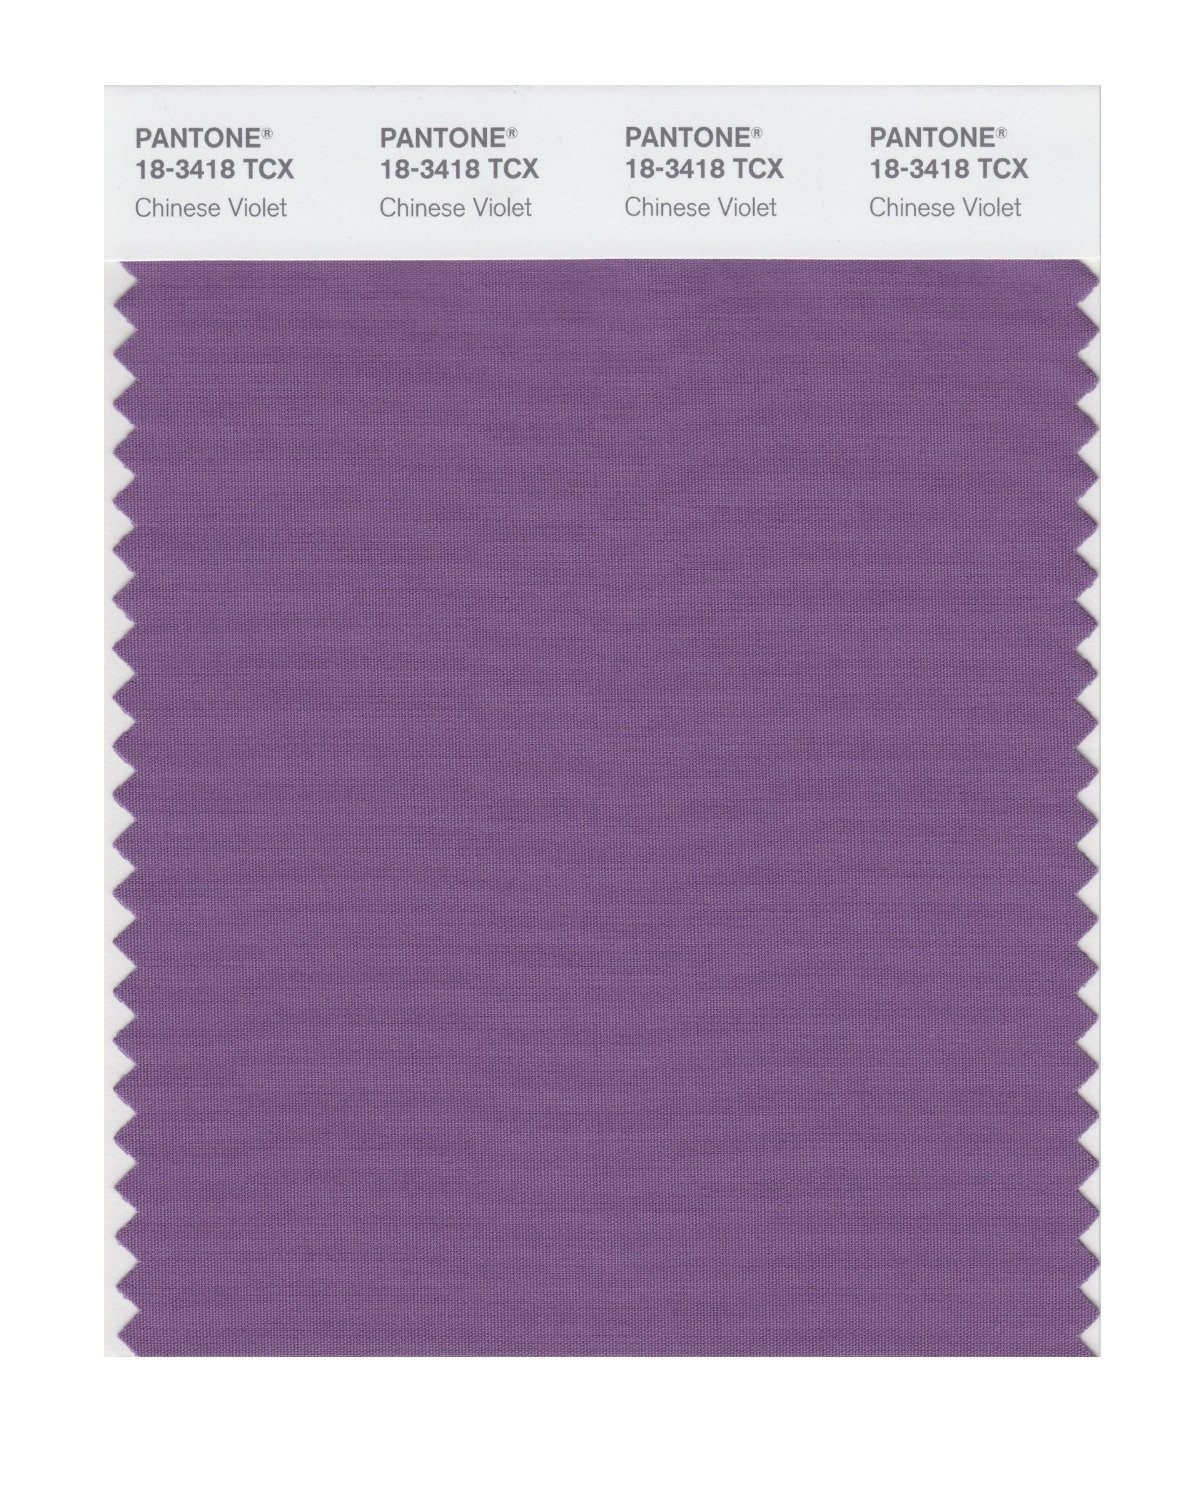 Pantone 18-3418 TCX Swatch Card Chinese Violet